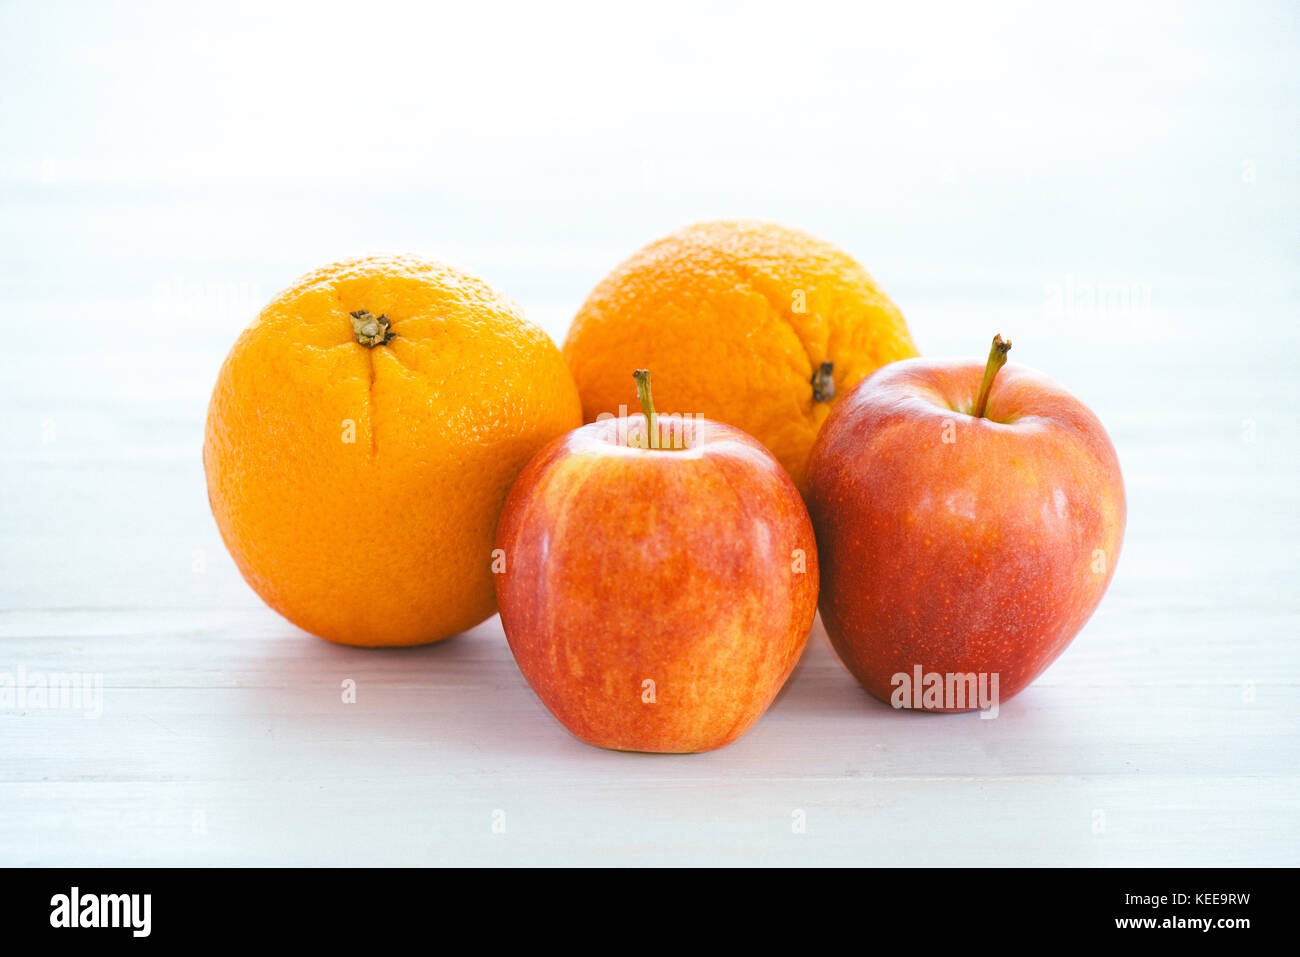 apples and oranges - Stock Image